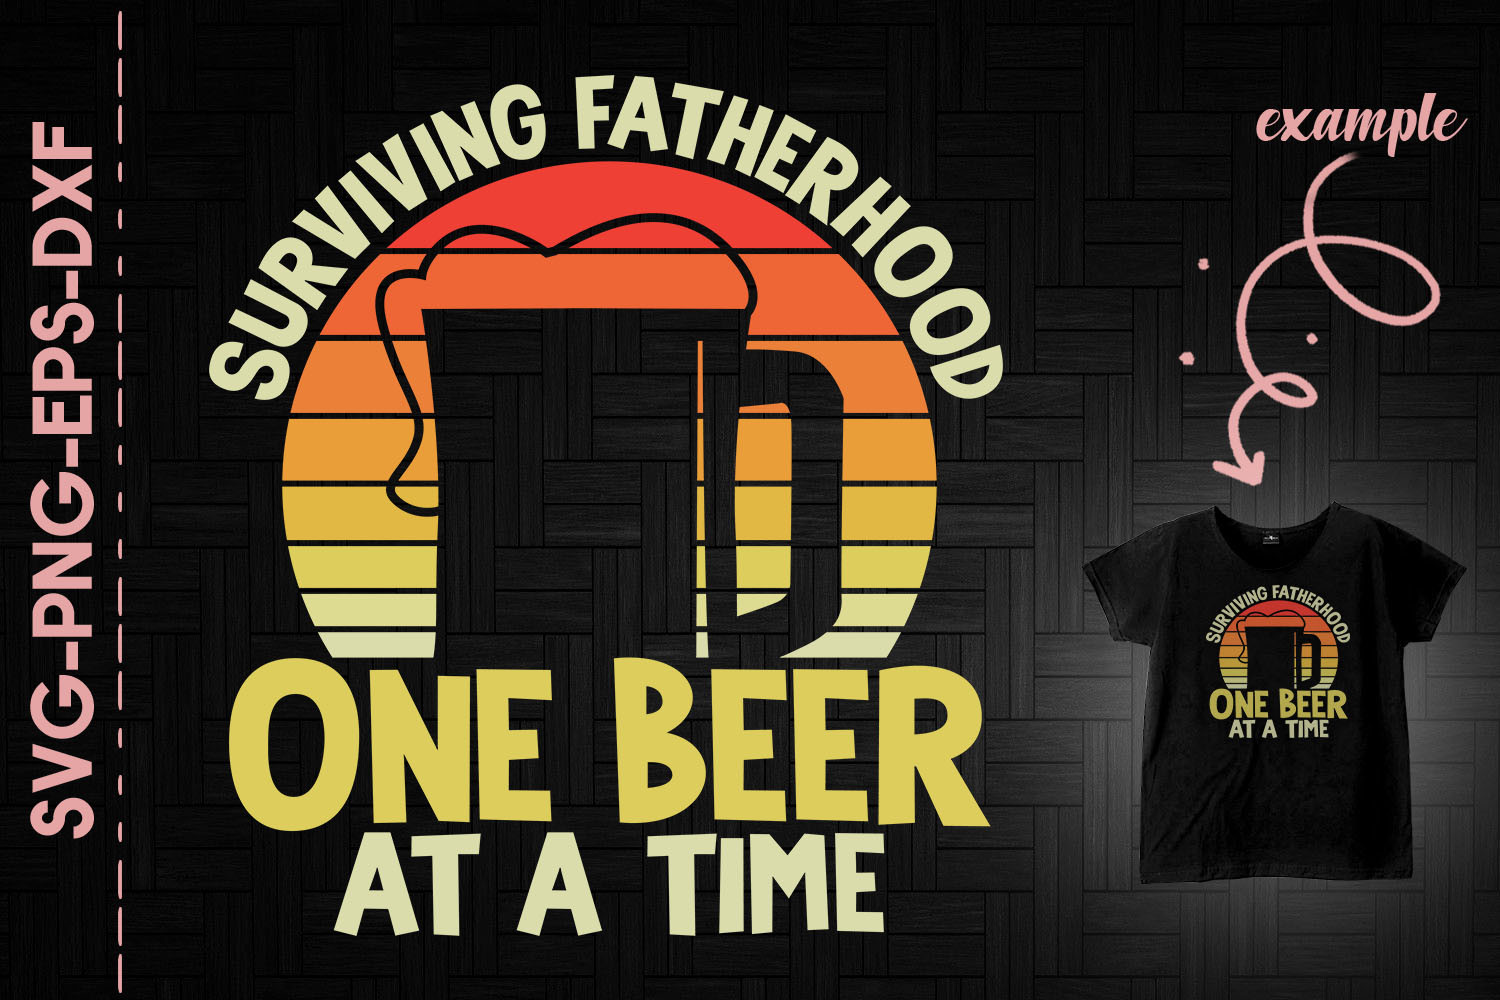 Surviving Fatherhood One Beer at a Time SVG File